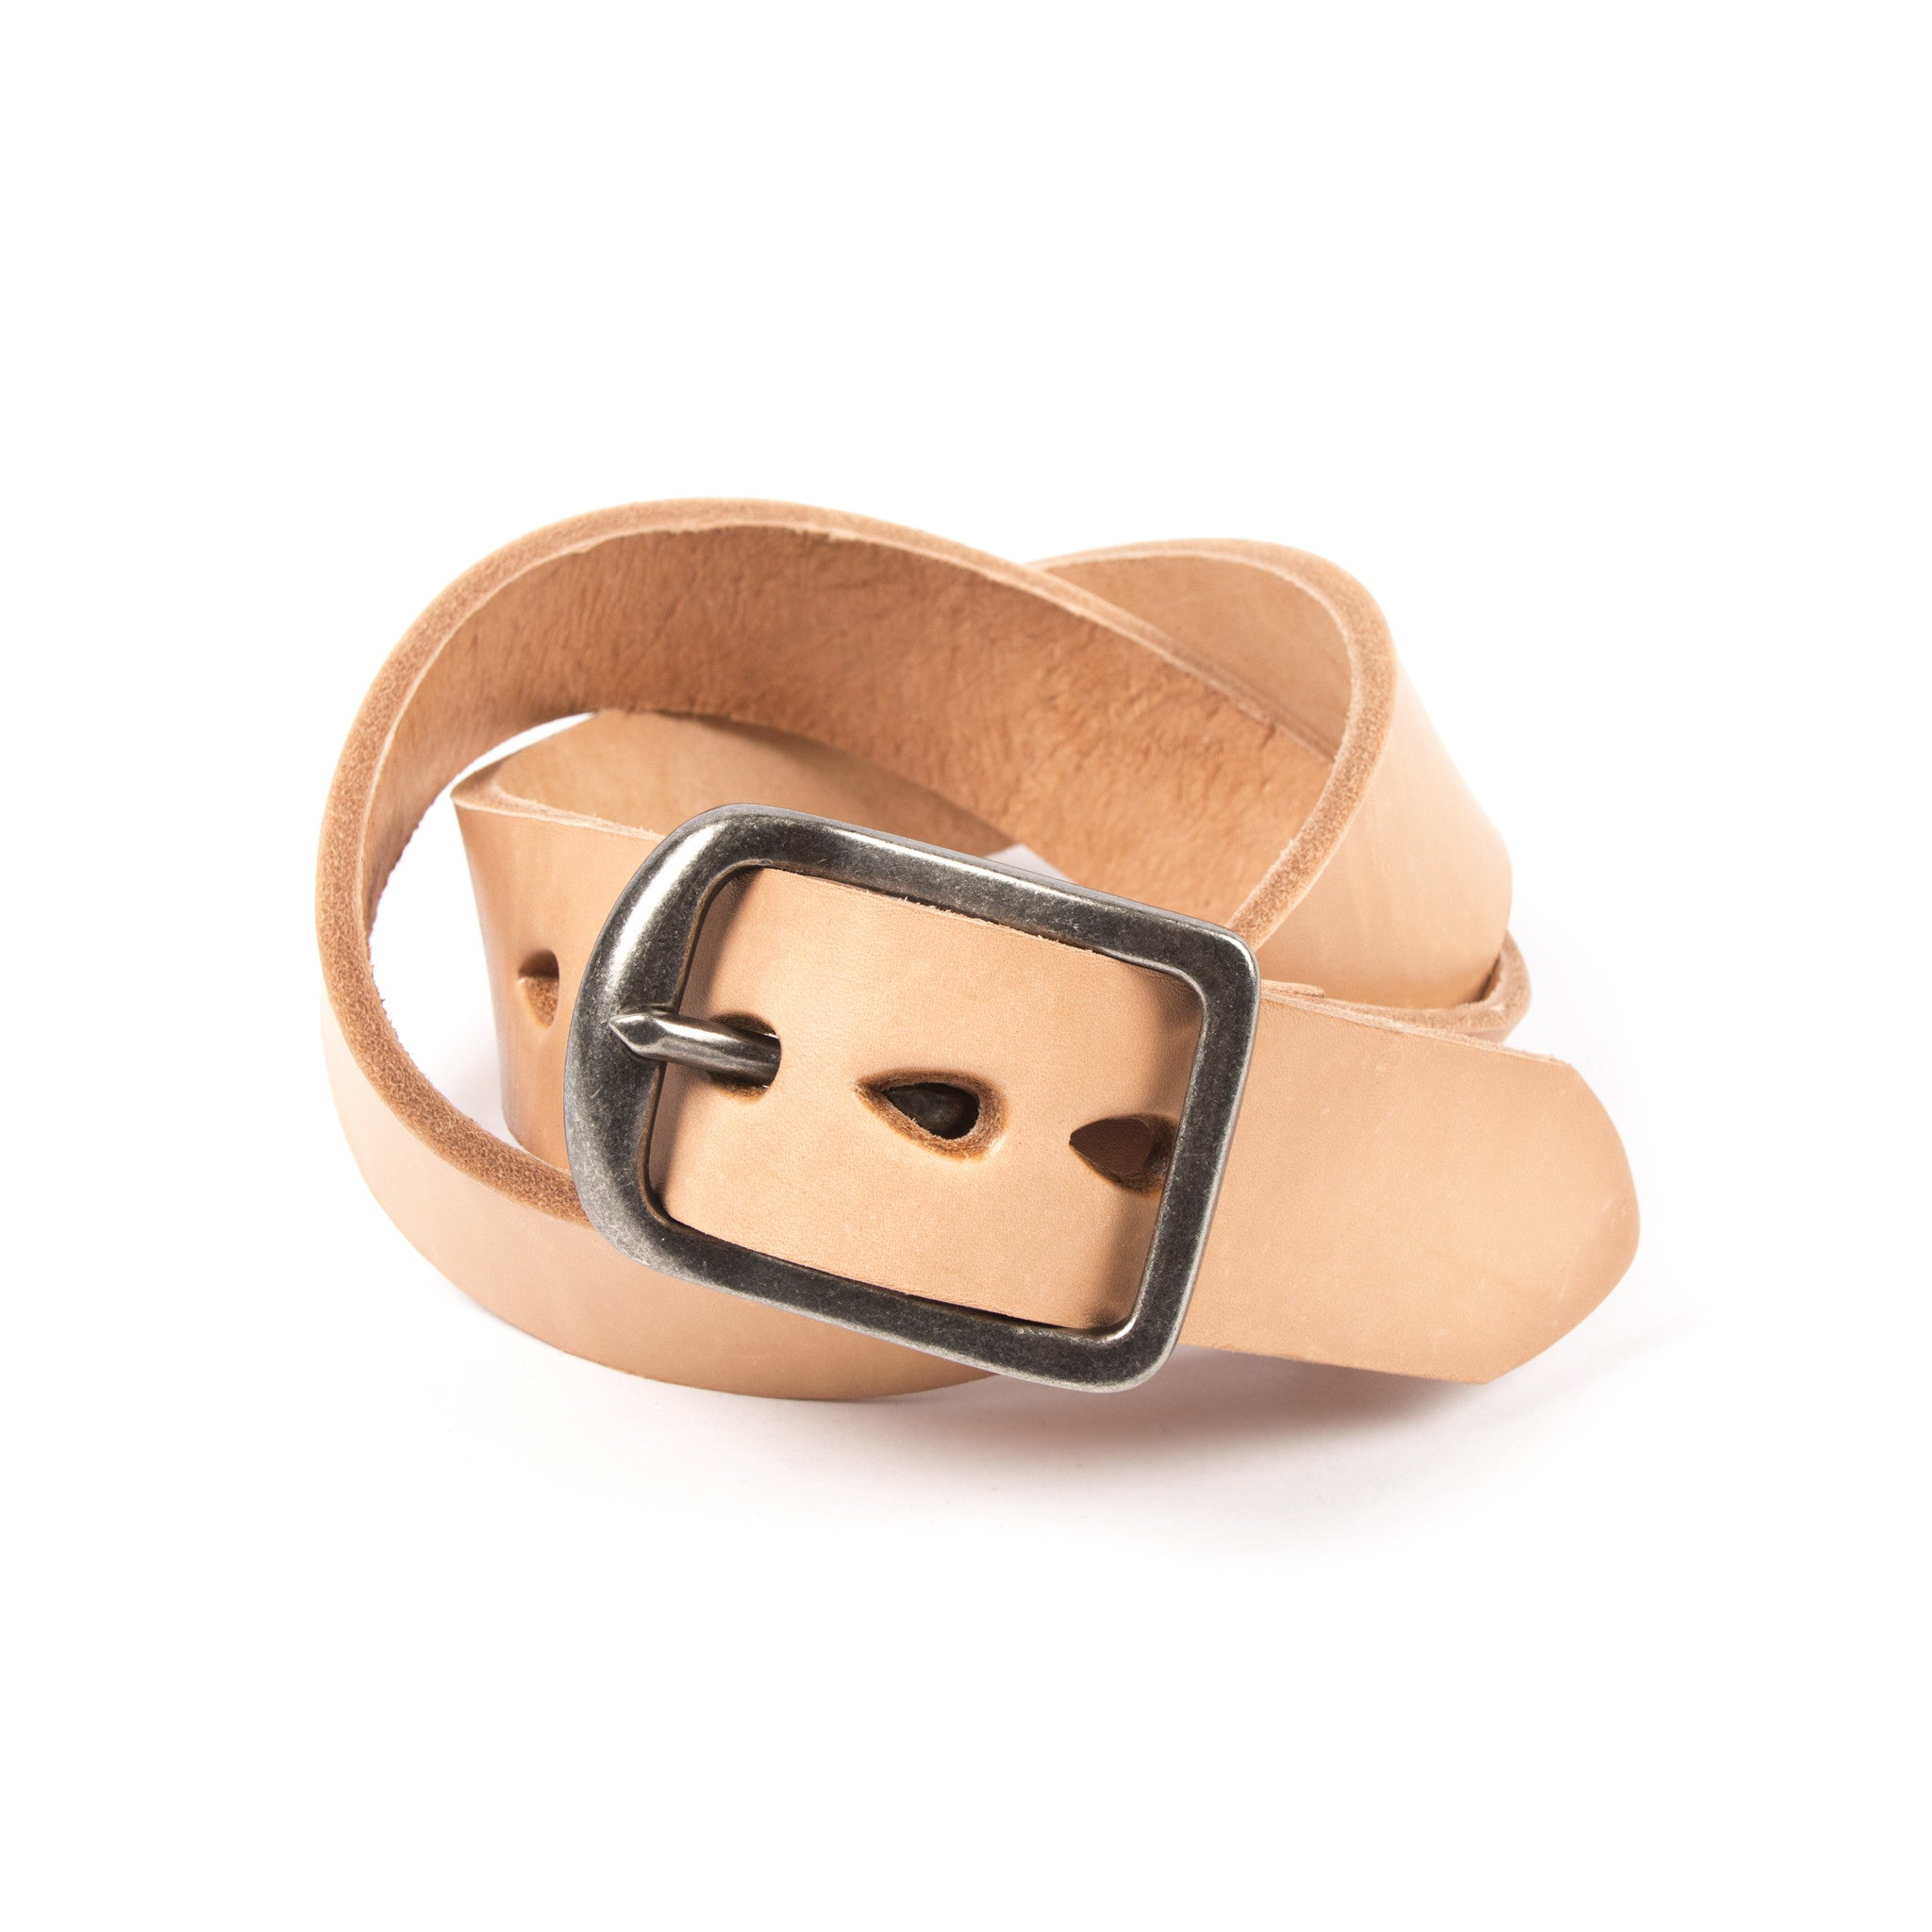 019016 ThickBelt - Natural Tan